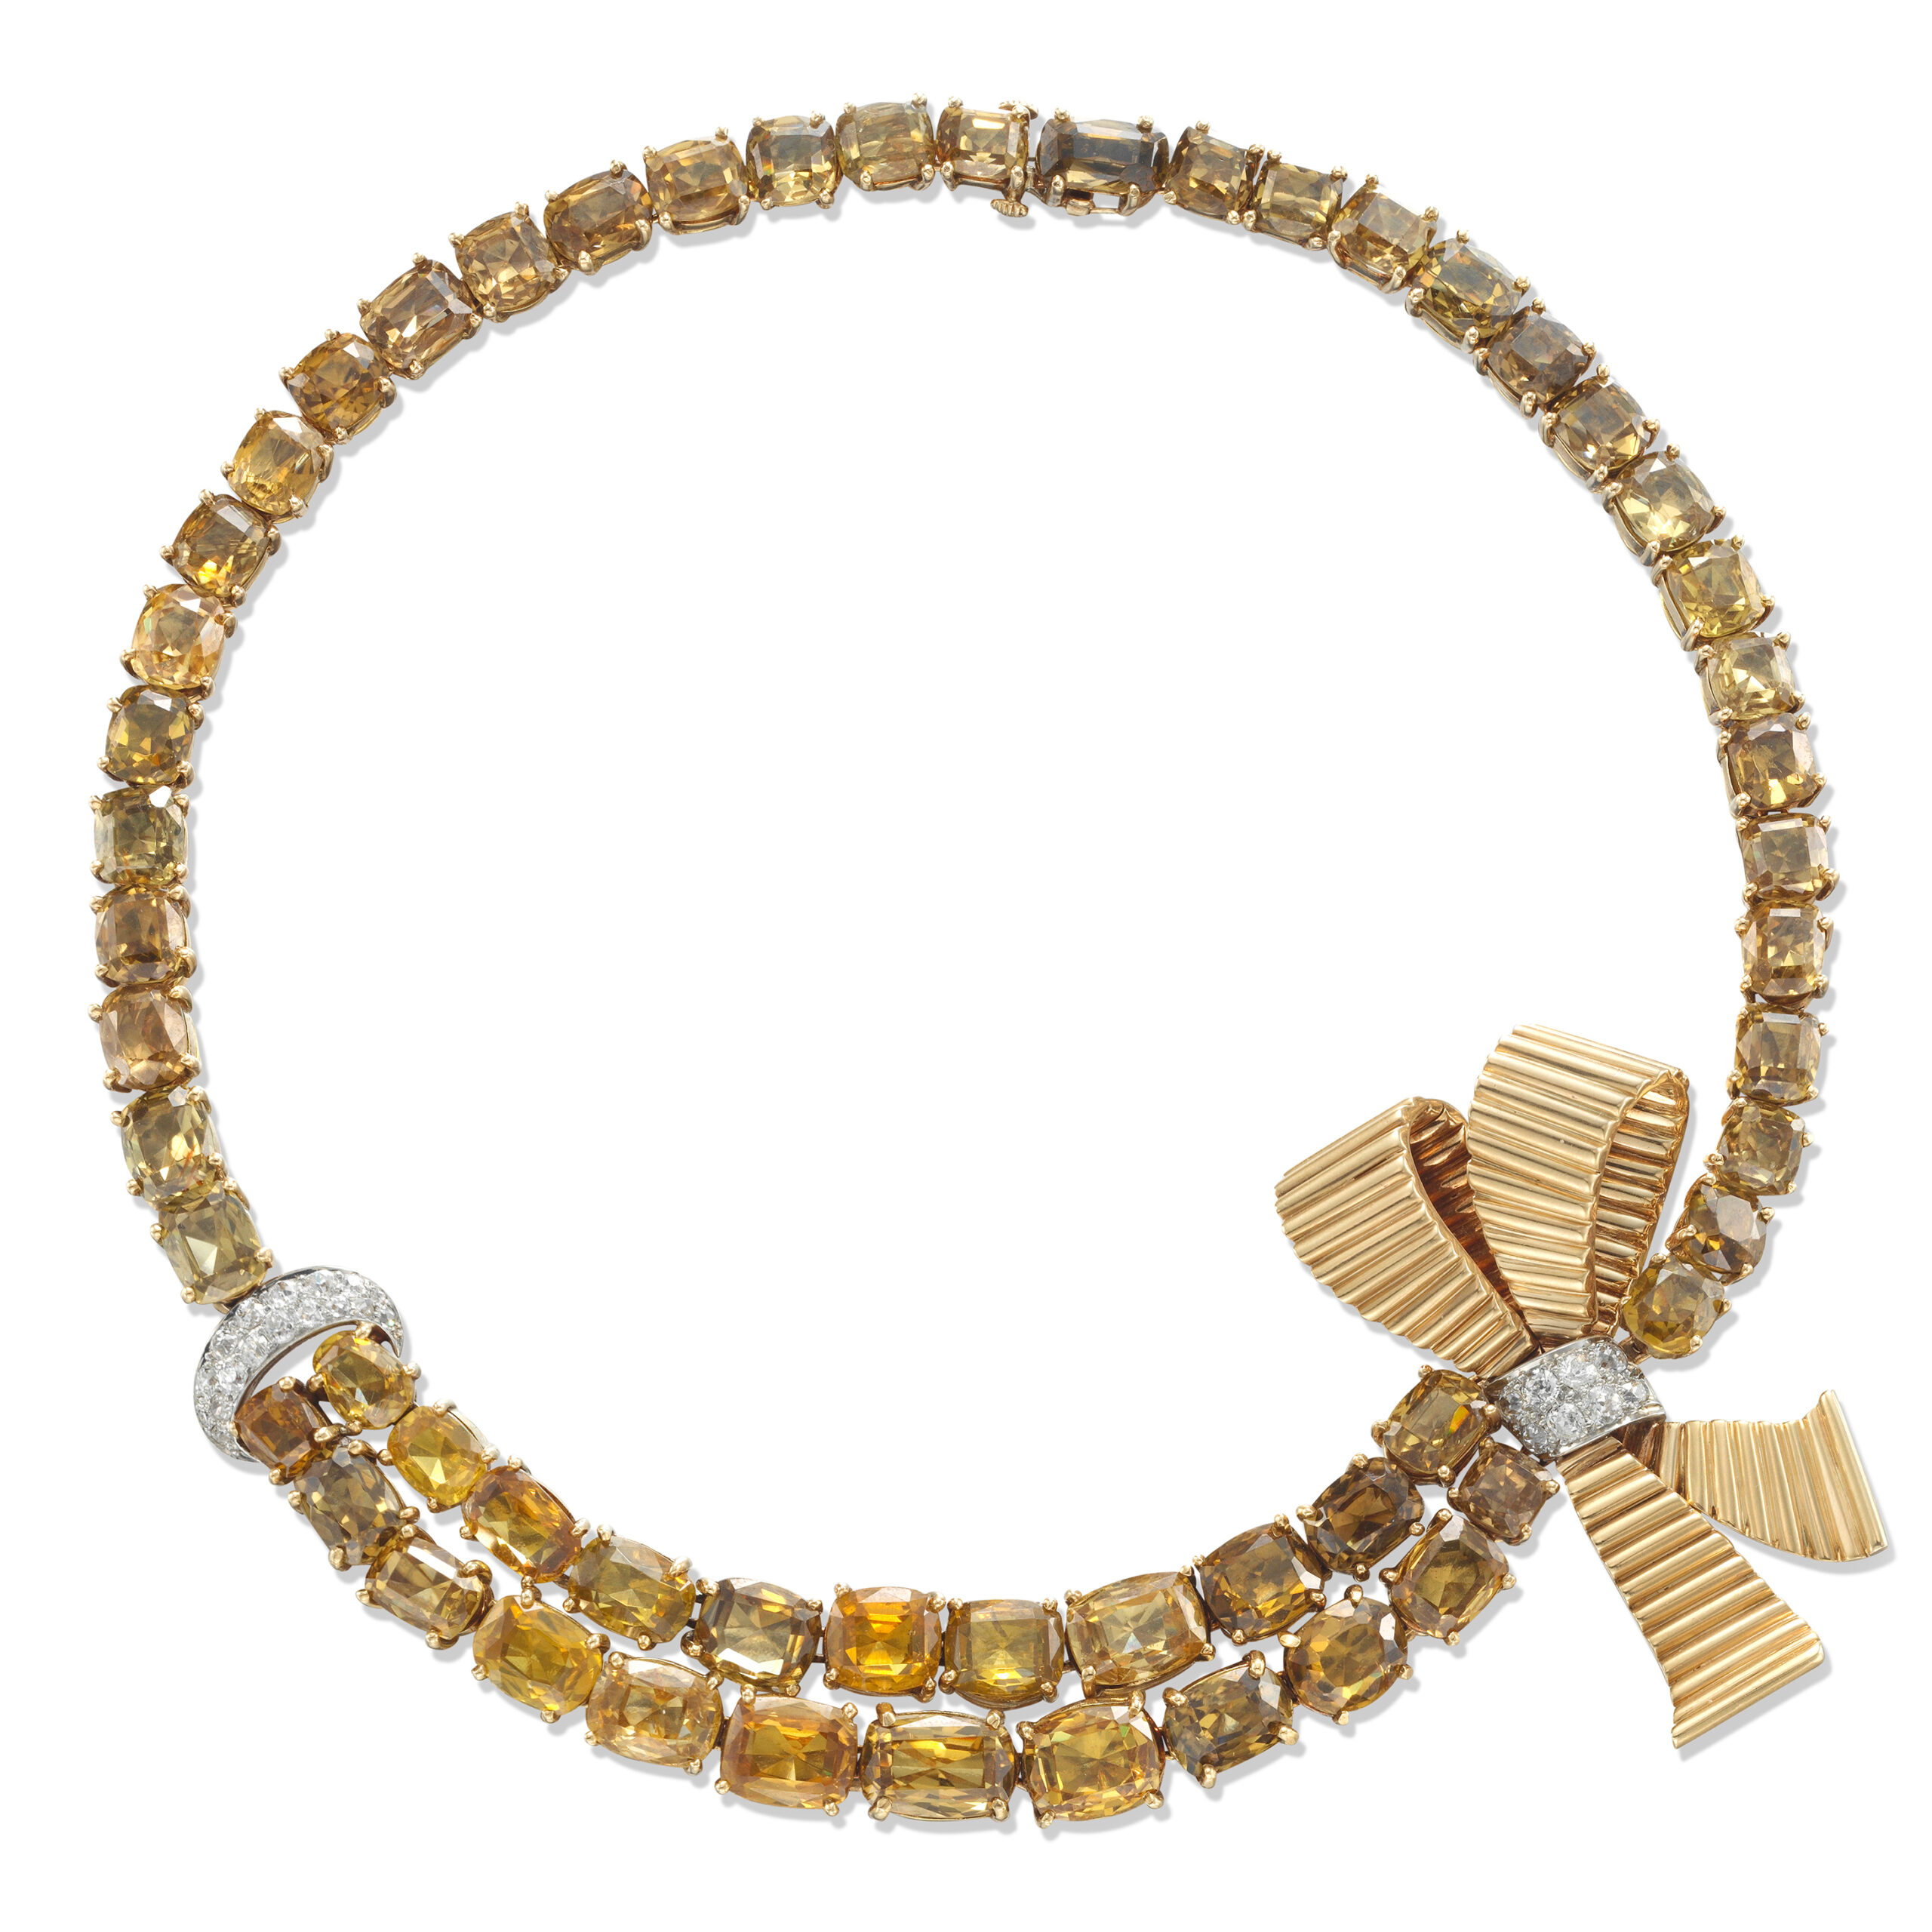 A Sphene and Diamond Ribbon Necklace, by Paul Flato